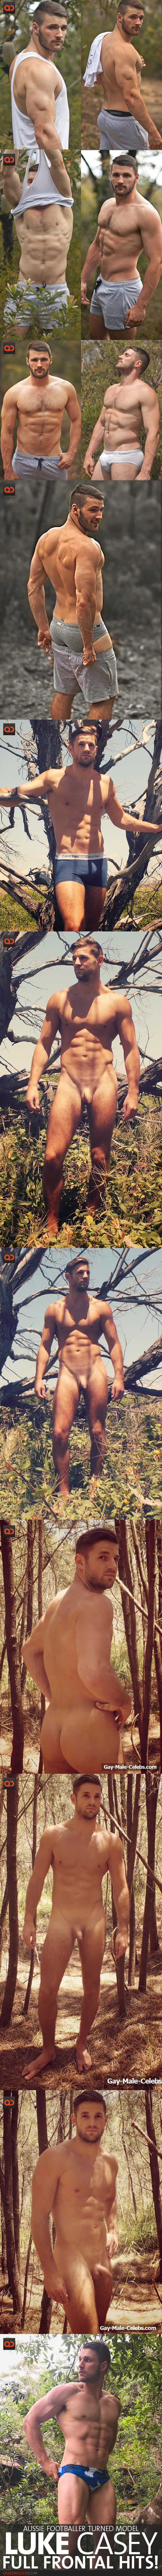 Luke Casey, Aussie Footballer Turned Model, Full Frontal Hits!